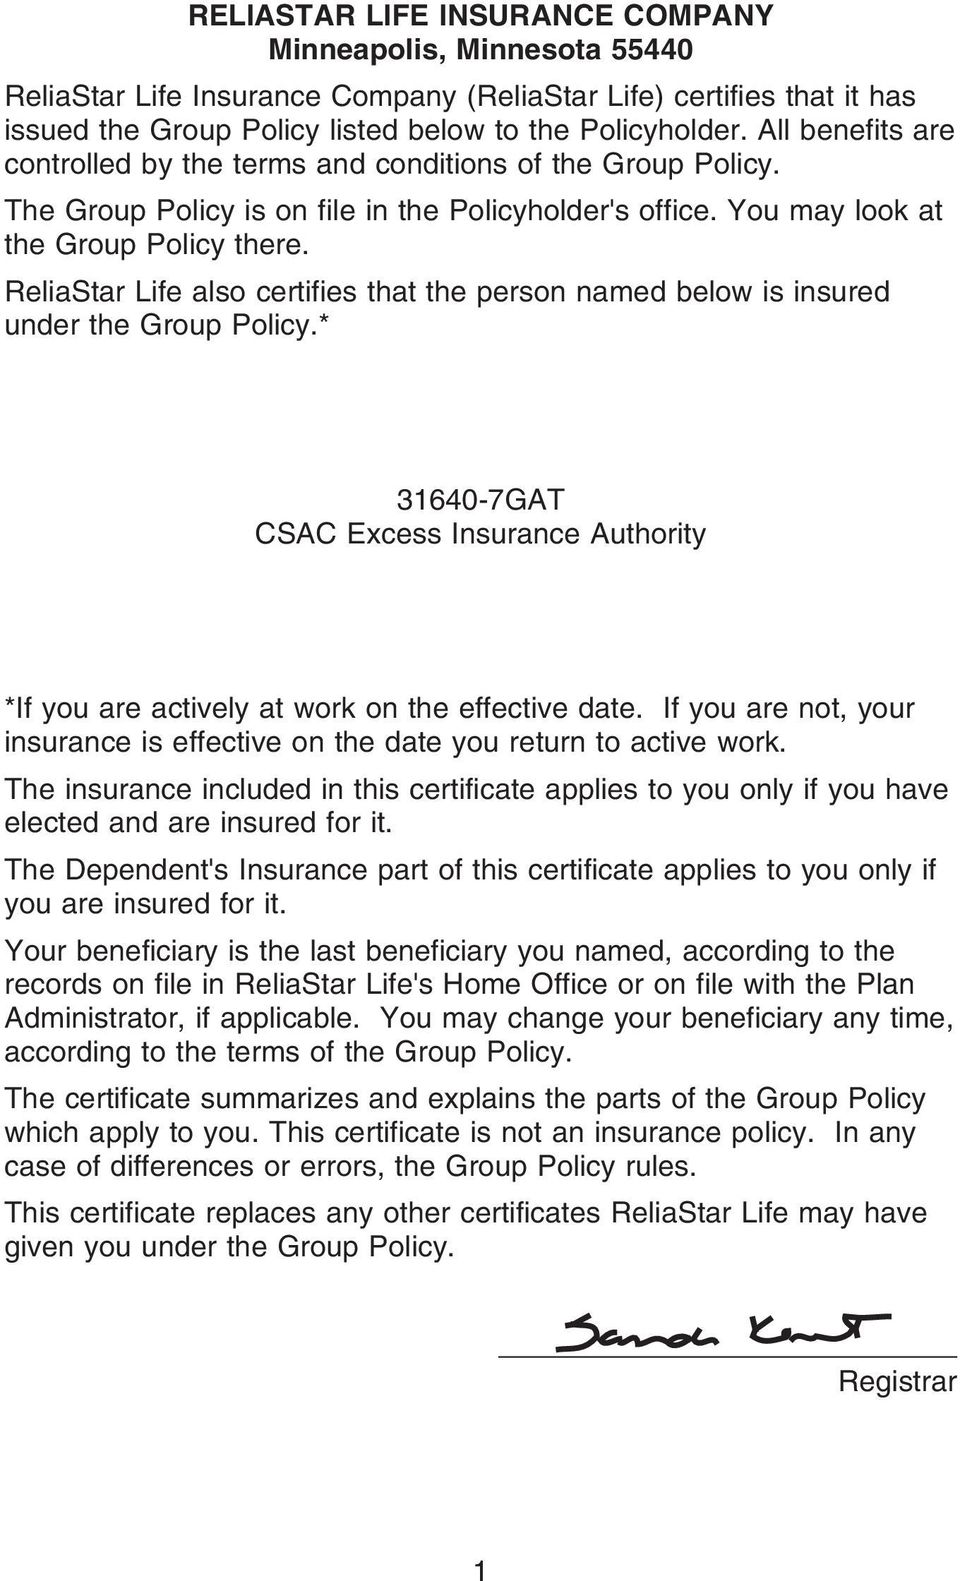 ReliaStar Life also certifies that the person named below is insured under the Group Policy.* 31640-7GAT CSAC Excess Insurance Authority *If you are actively at work on the effective date.